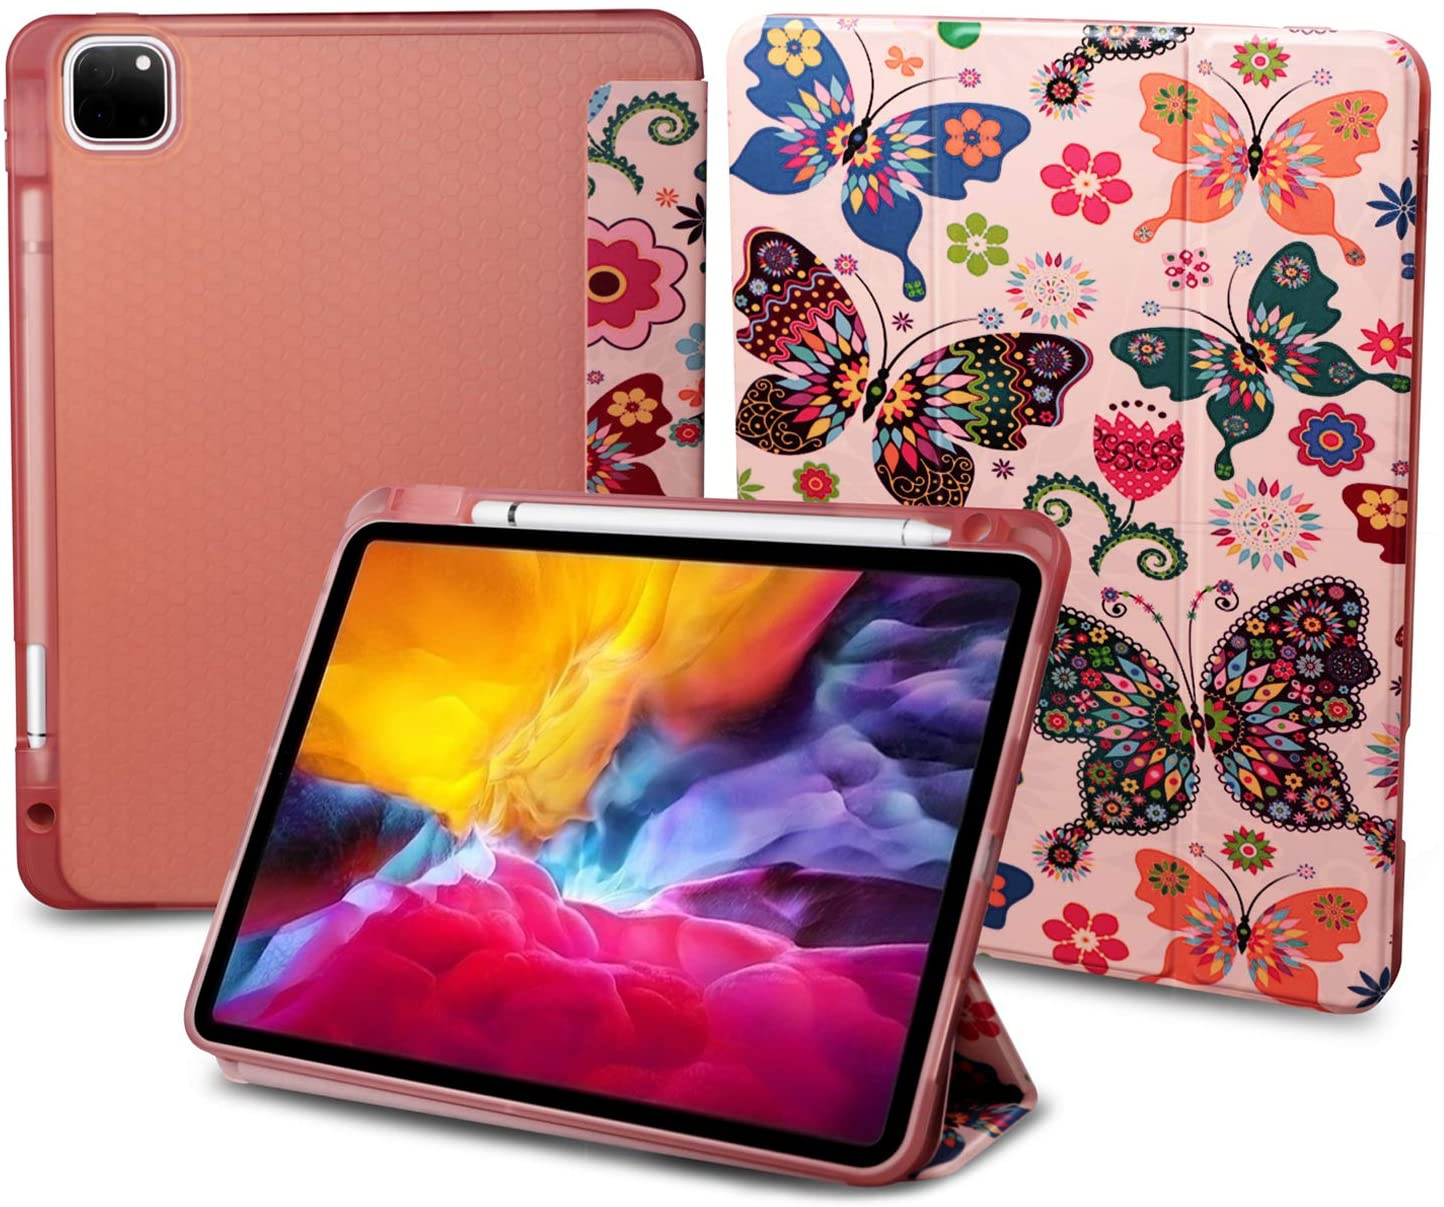 iPad Pro 11 Case 2020 & 2018 with Stand and Pencil Holder - [Full Body Protection + Apple Pencil Charging + Auto Wake], Soft TPU Back Cover for 2020 iPad Pro 11 inch(Butterfly+Gold)